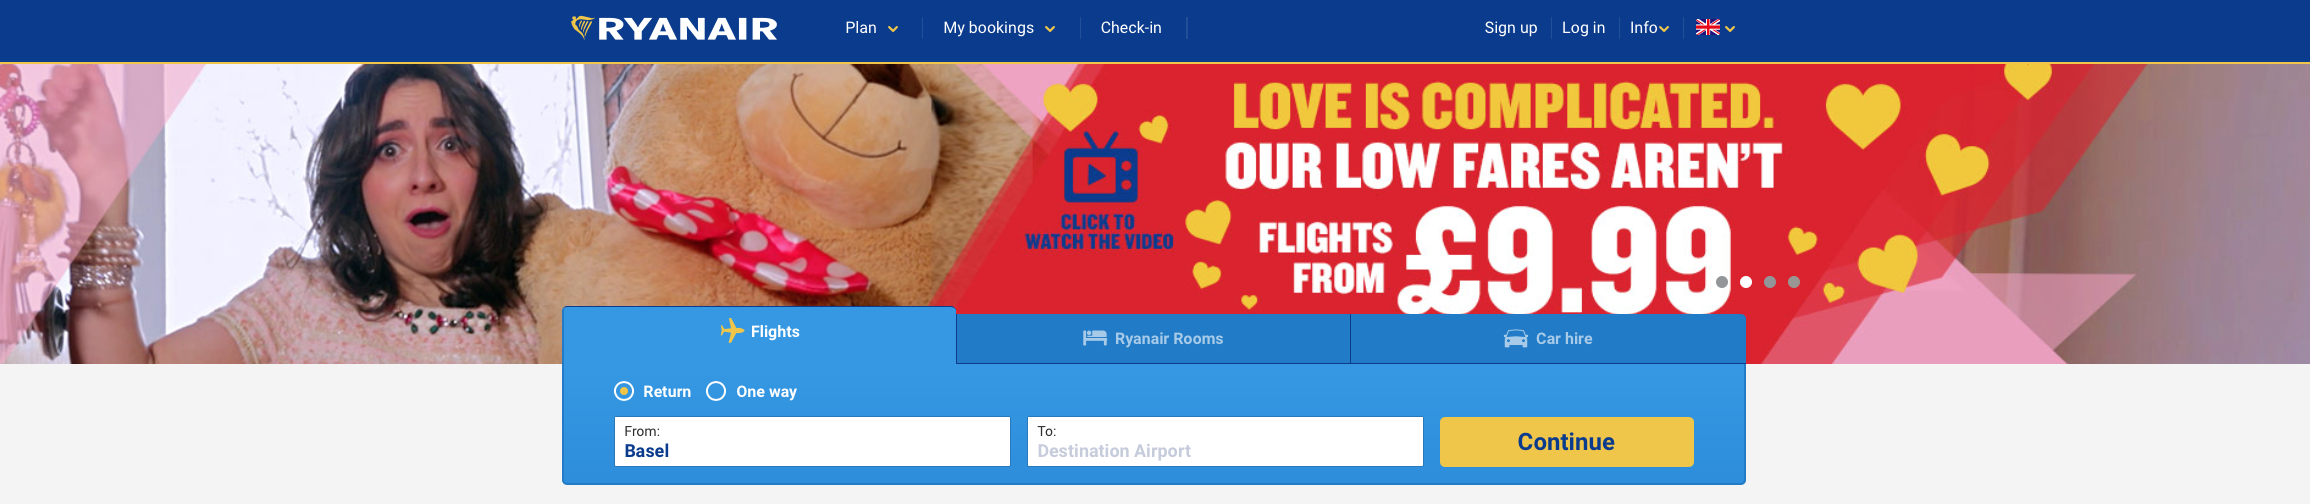 "Ryanair Valentine promotion ""Love is complicated, our low fares aren't"